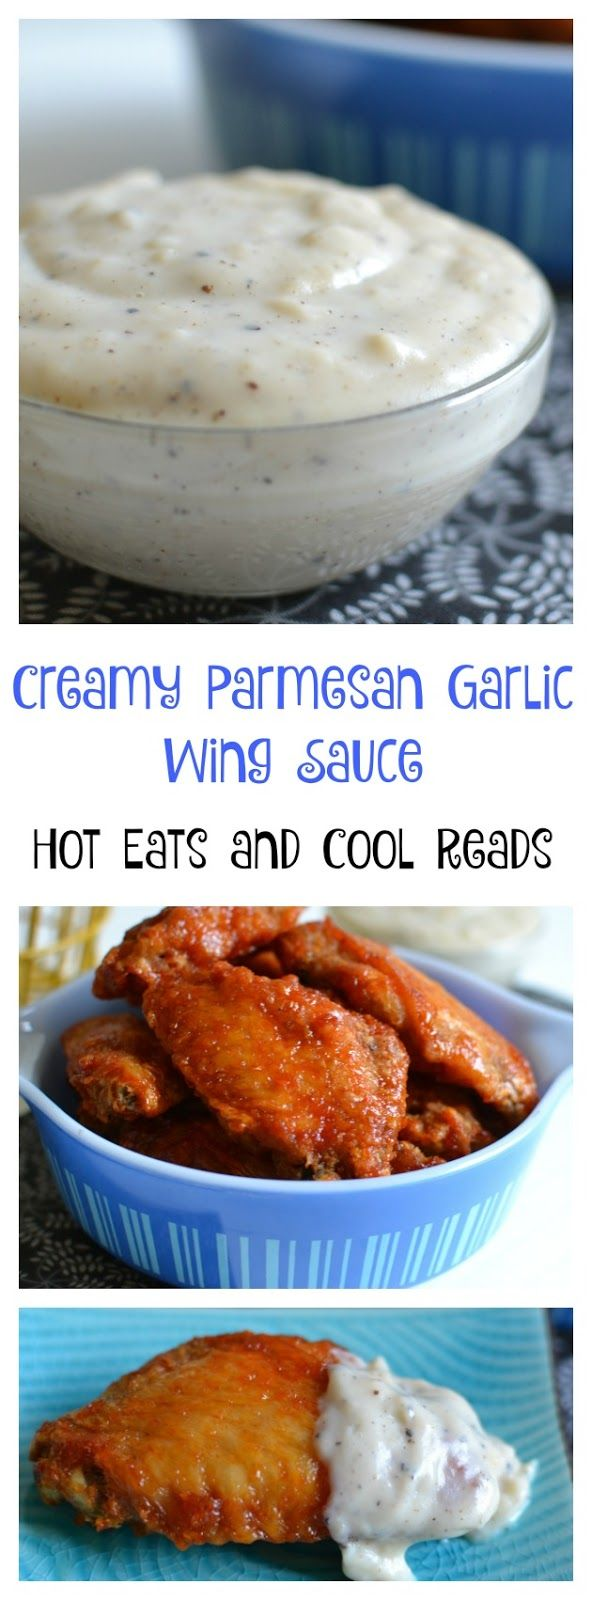 A delicious dipping sauce that's great for any wings, especially buffalo! Ready in less than 10 minutes! Creamy Parmesan Garlic Buffalo Wing Dipping Sauce Recipe from Hot Eats and Cool Reads